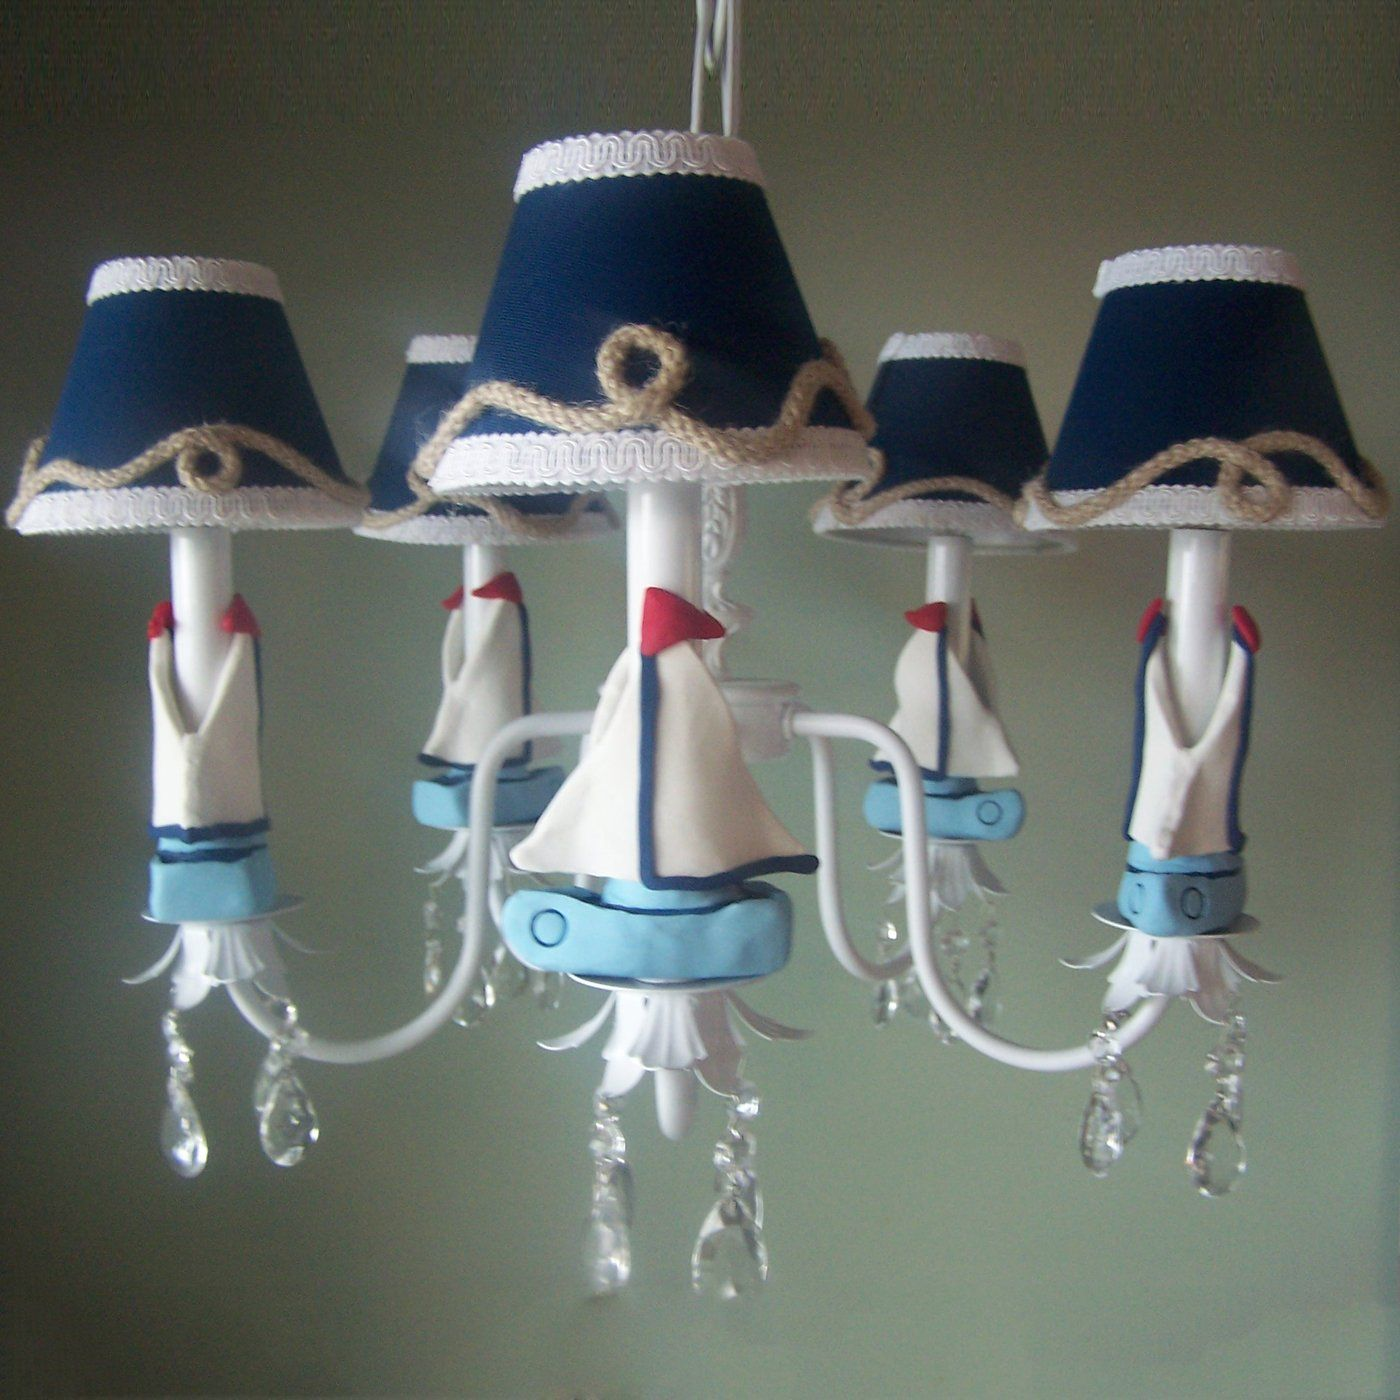 Silly bear lighting tc18 nautical sailboats chandelier kids ceiling silly bear lighting tc18 nautical sailboats chandelier kids ceiling light lighting universe arubaitofo Choice Image